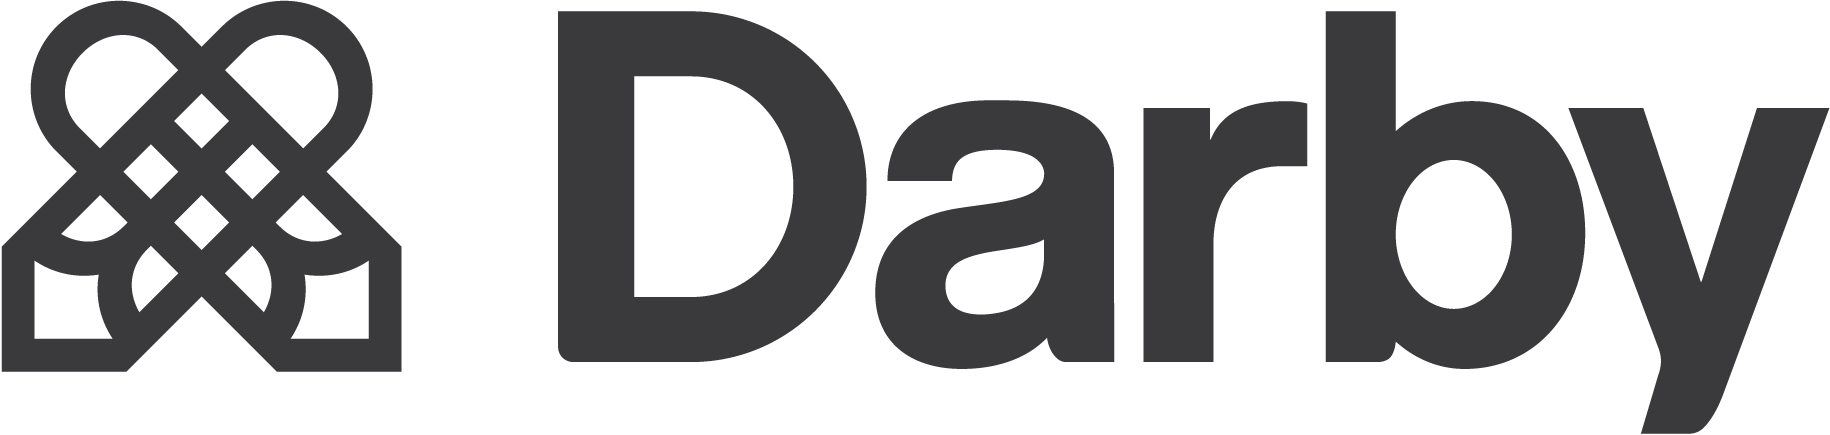 Darby-logo-with-icon-left.png